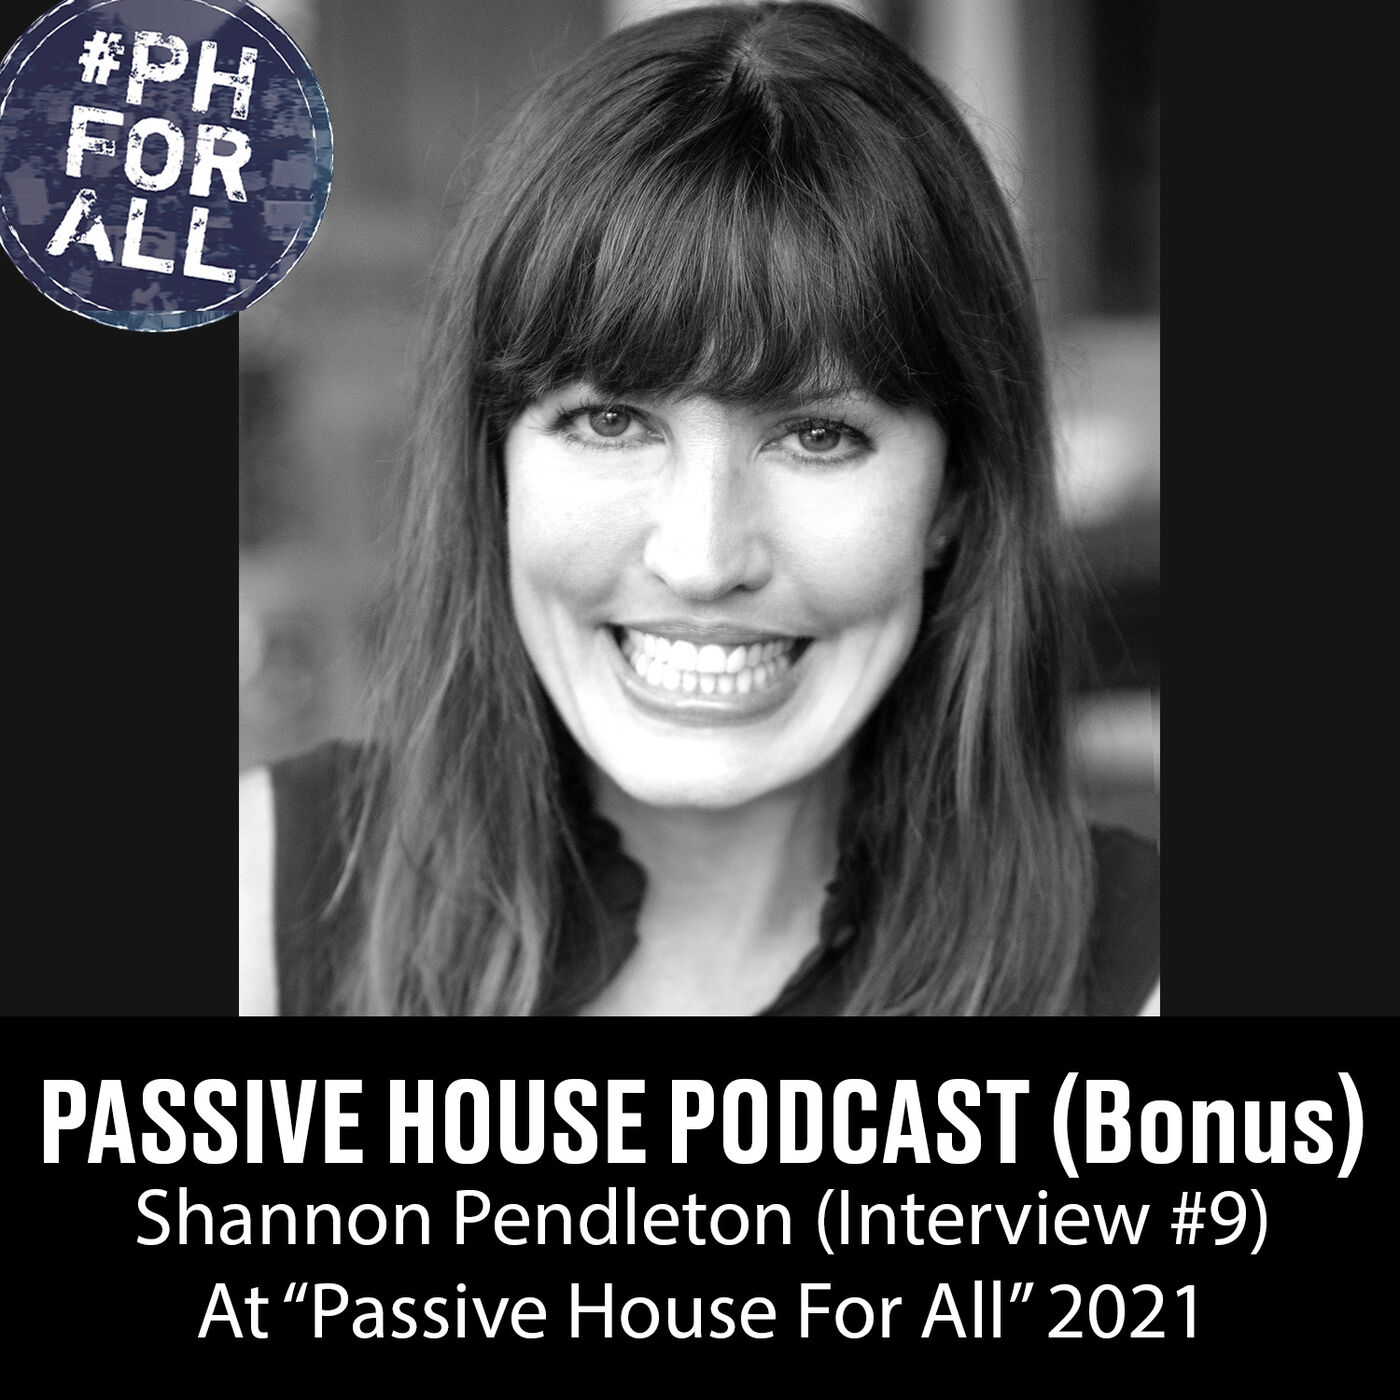 Bonus: Shannon Pendleton at Passive House For All Conference (Interview #9)